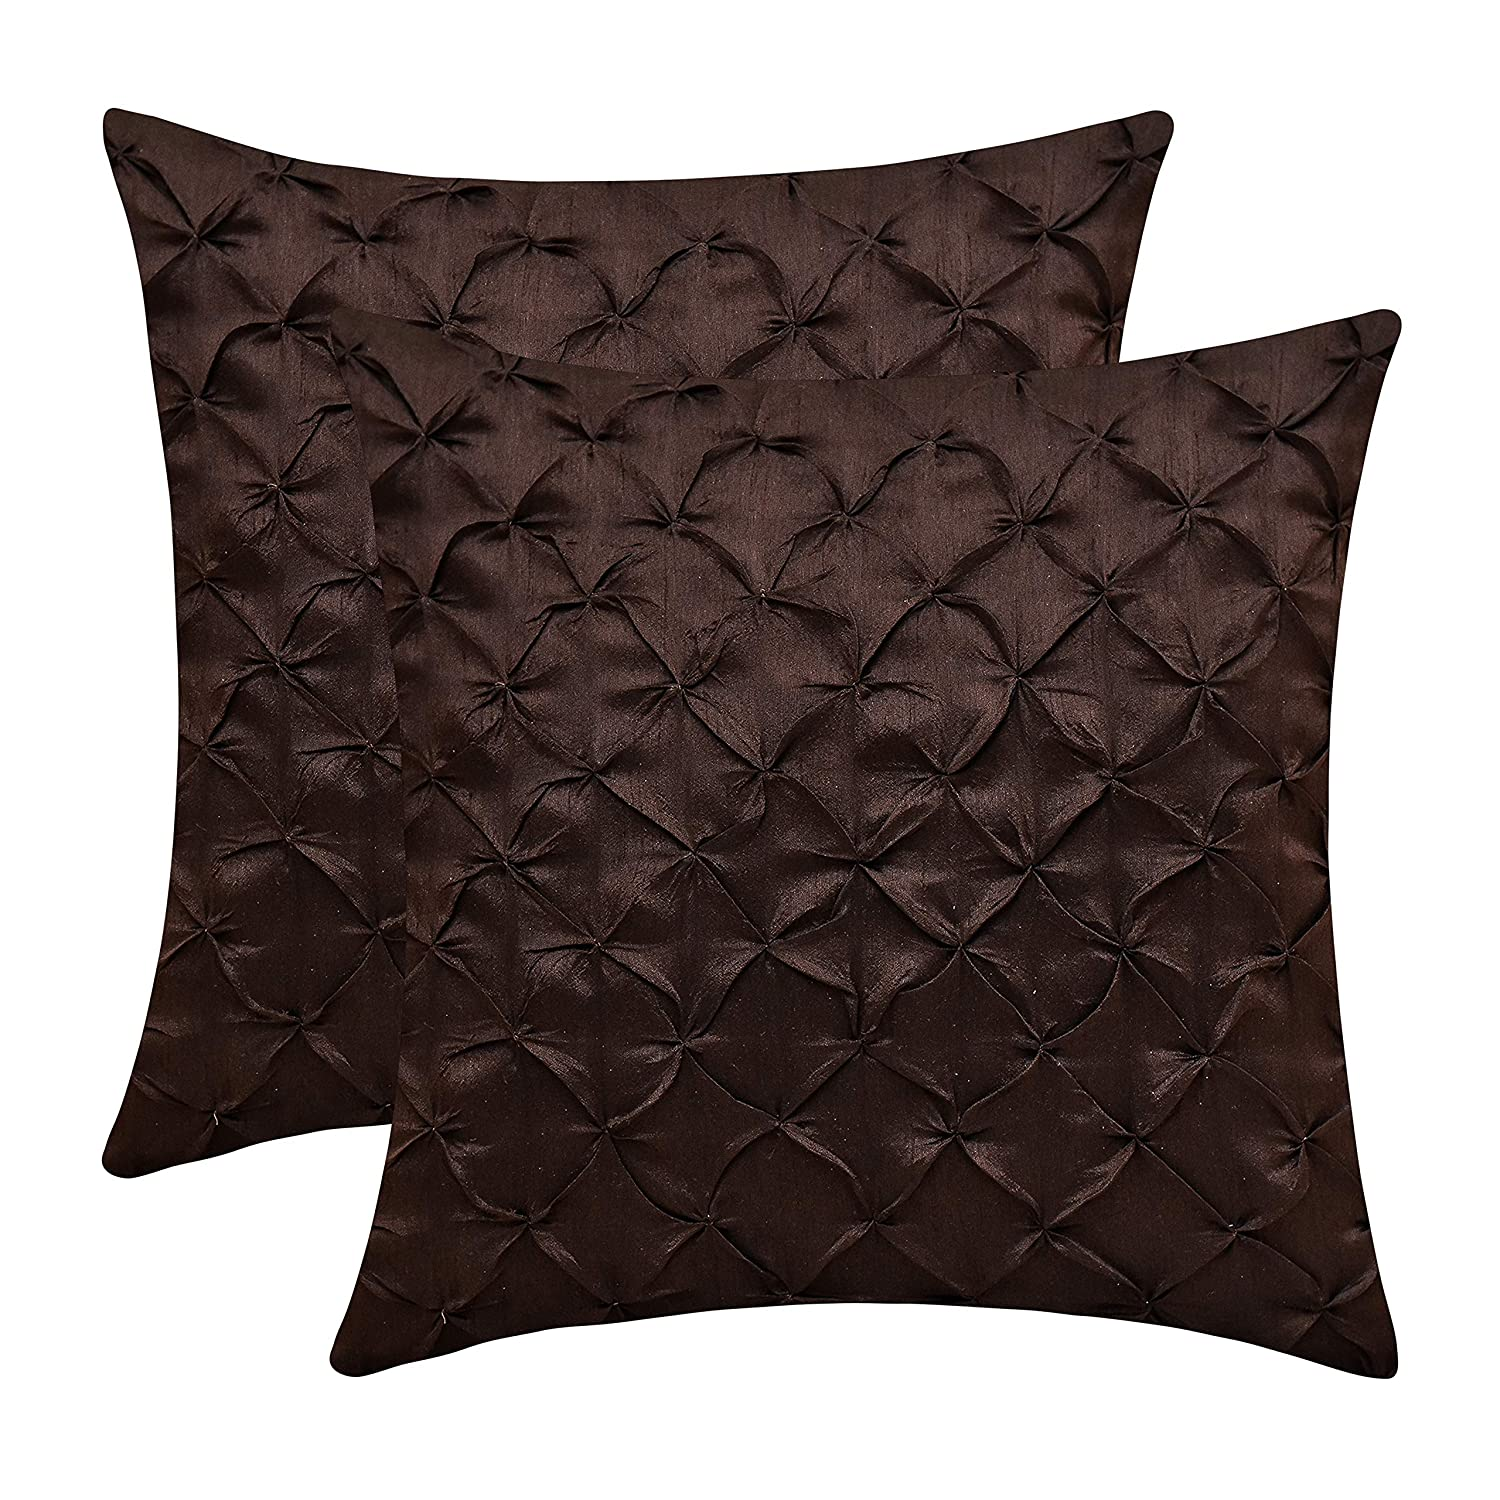 Dark Brown Throw Pillows.The White Petals Dark Brown Throw Pillow Covers Faux Silk Pinch Pleat 18x18 Inch Pack Of 2